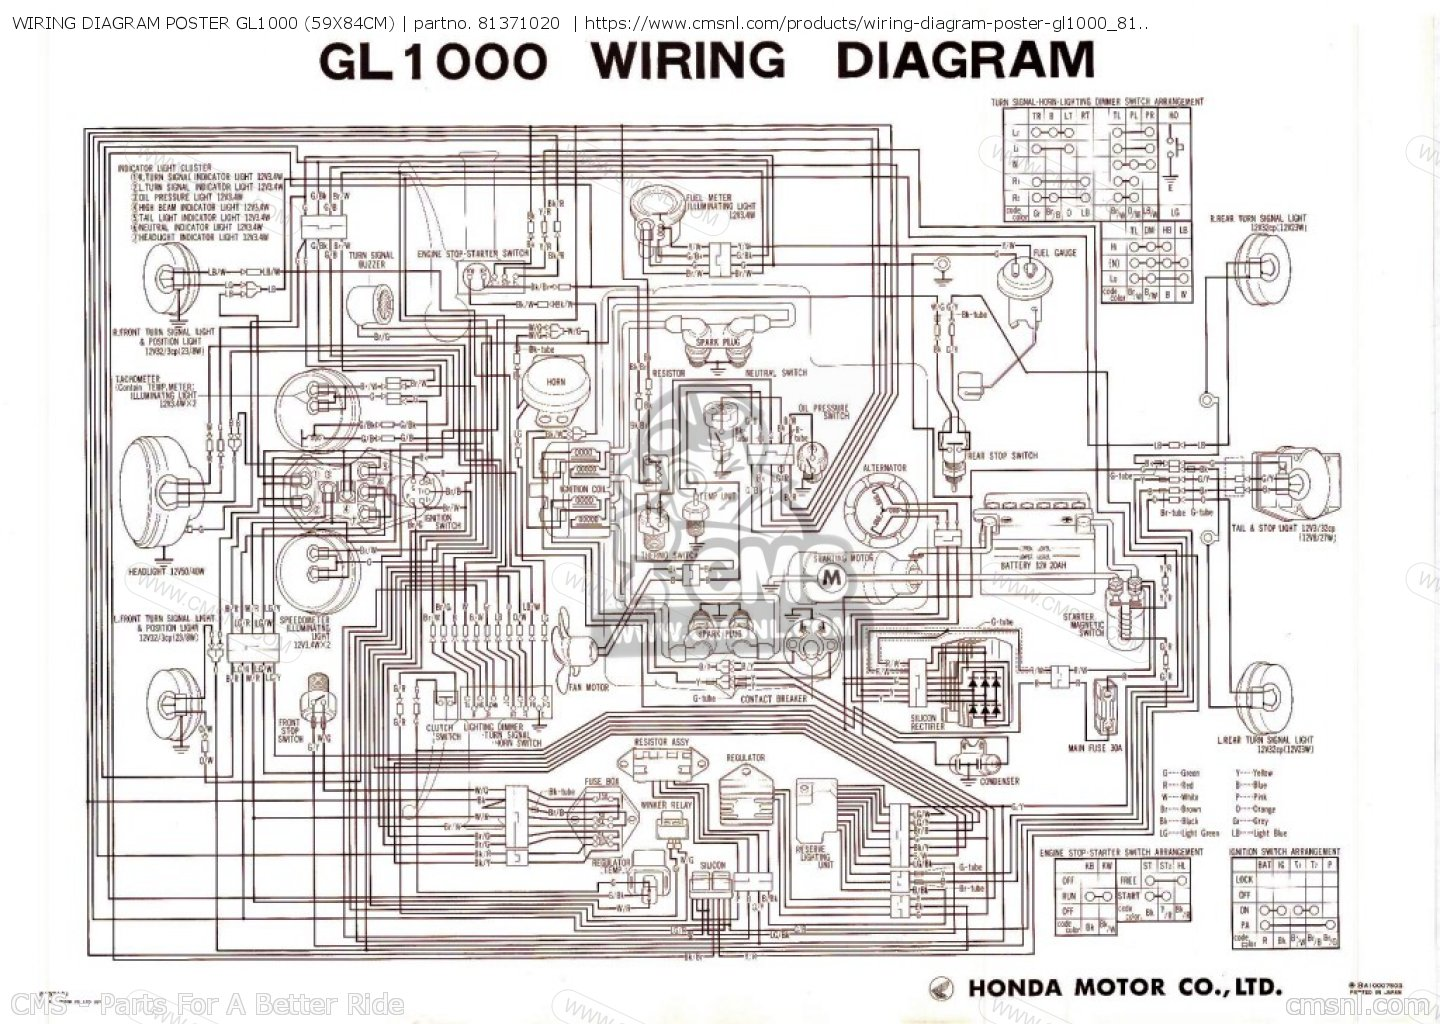 1978 Honda Goldwing Gl1000 Wiring Diagram Honda Diagram – Kawasaki Bayou 220 Wire Diagram